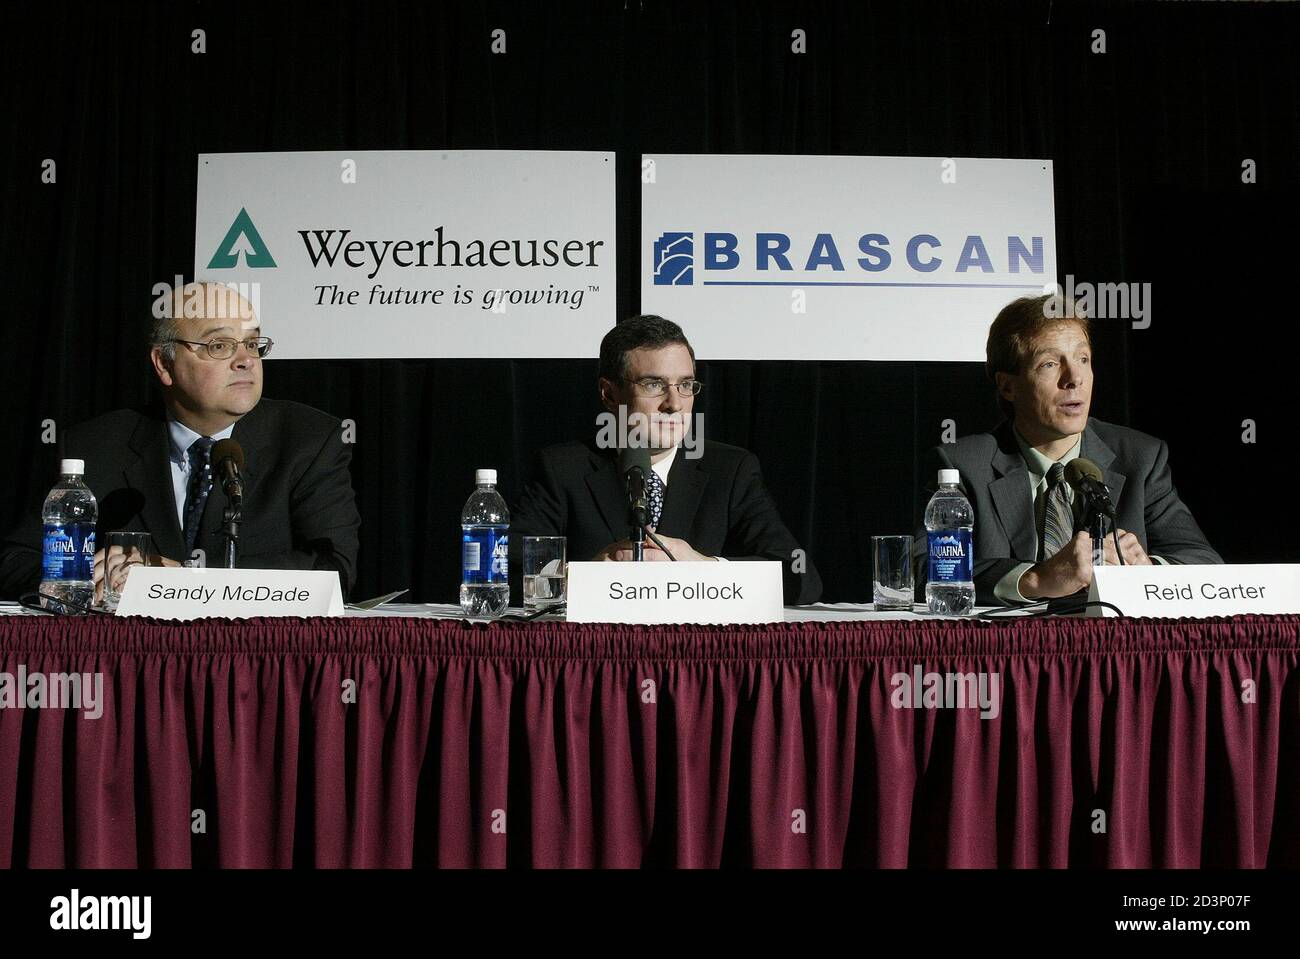 Sandy McDade, President of Weyerhaeuser Company Limited, (L), Sam Pollock, Managing Partner and President of Brascan Investments, (C) and Reid Carter, Managing Partner of Brascan Timberlands Asset Management hold a press conference in Vancouver British Columbia, February 18, 2005. Brascan will purchase Weyerhaeuser's costal assets in Canada for 1.2 billion (CDN), 970 million (USD) plus working capital. REUTERS/Lyle Stafford  LS Stock Photo